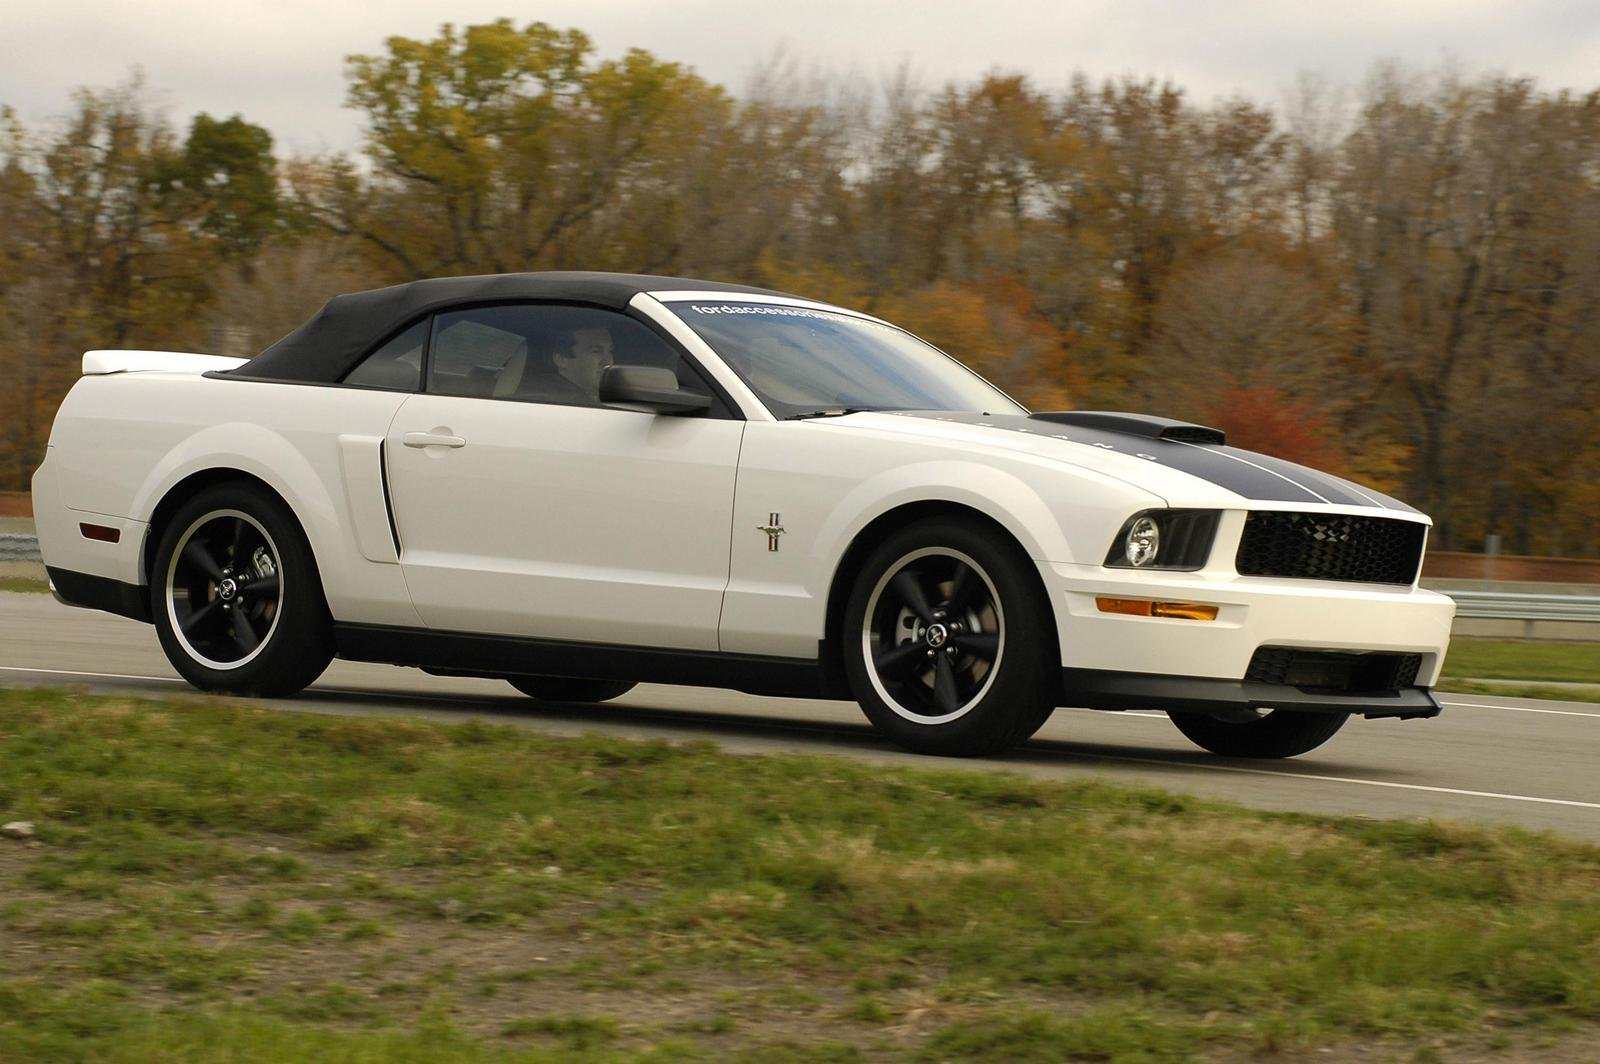 2007 ford project mustang gt picture 109138 car review. Black Bedroom Furniture Sets. Home Design Ideas